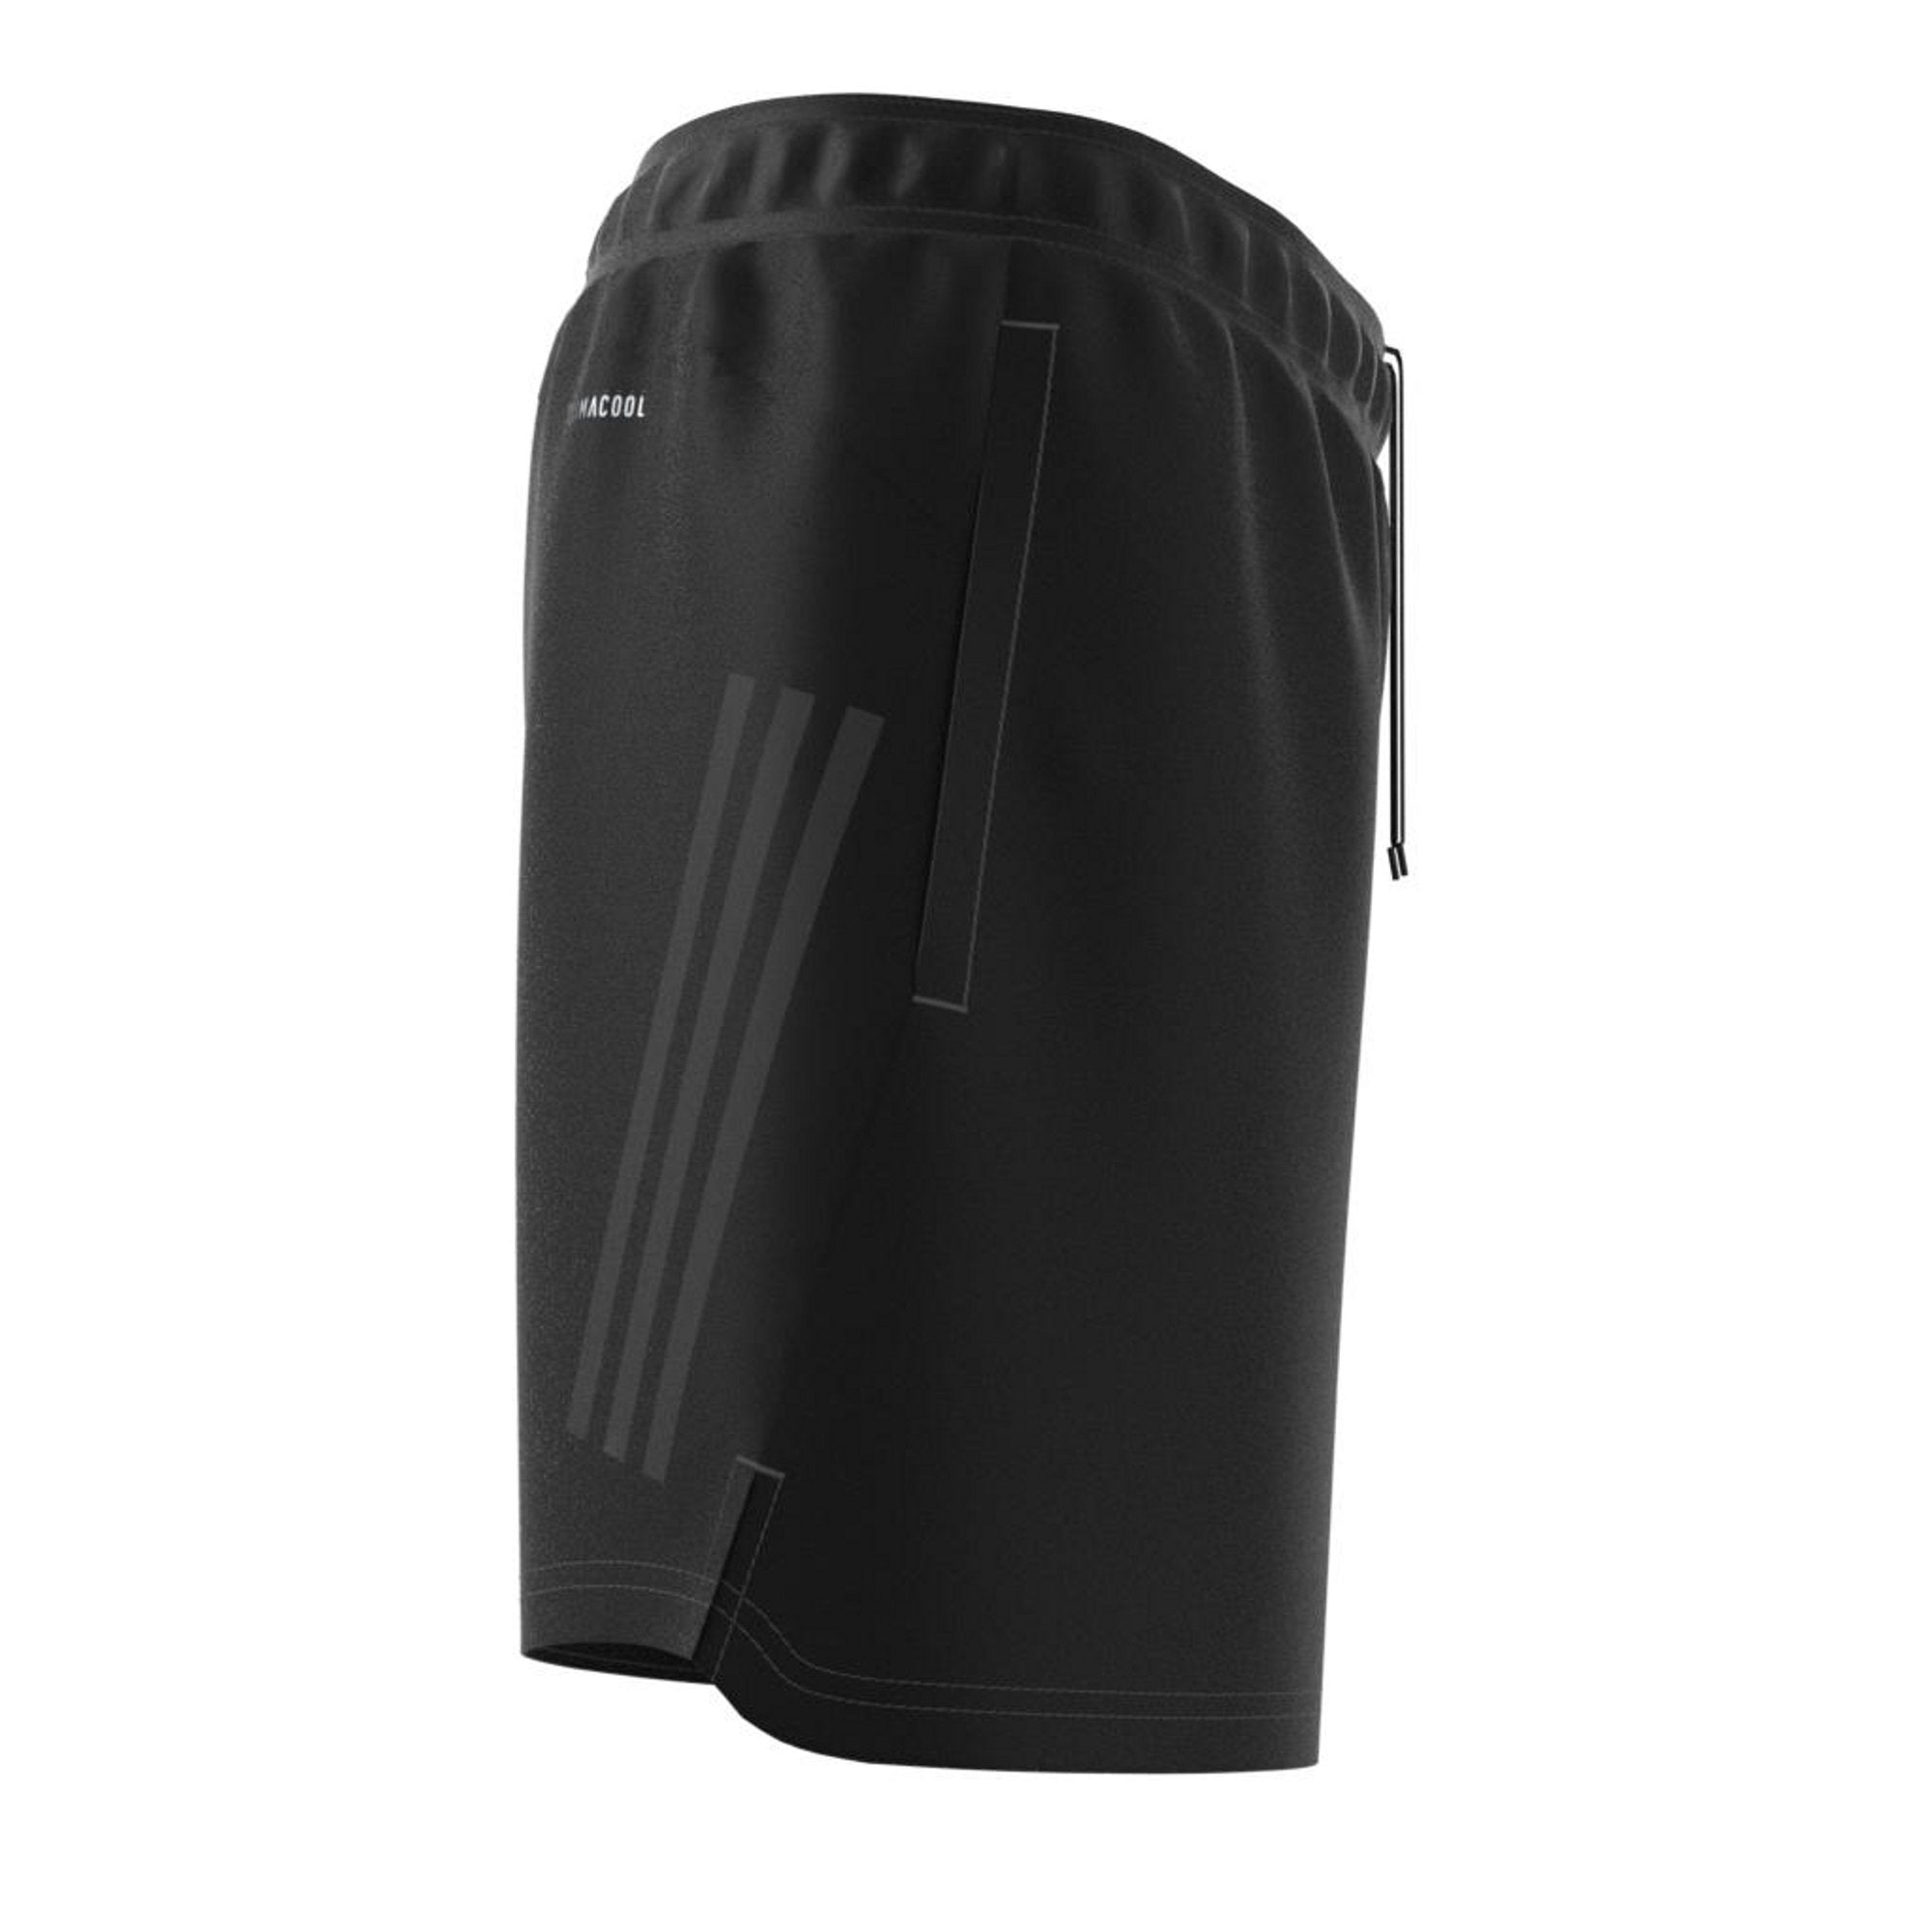 Adidas Mens 4KRFT Tech 6-Inch Climacool Shorts - black SP-APPARELSHORTS-MENS Adidas